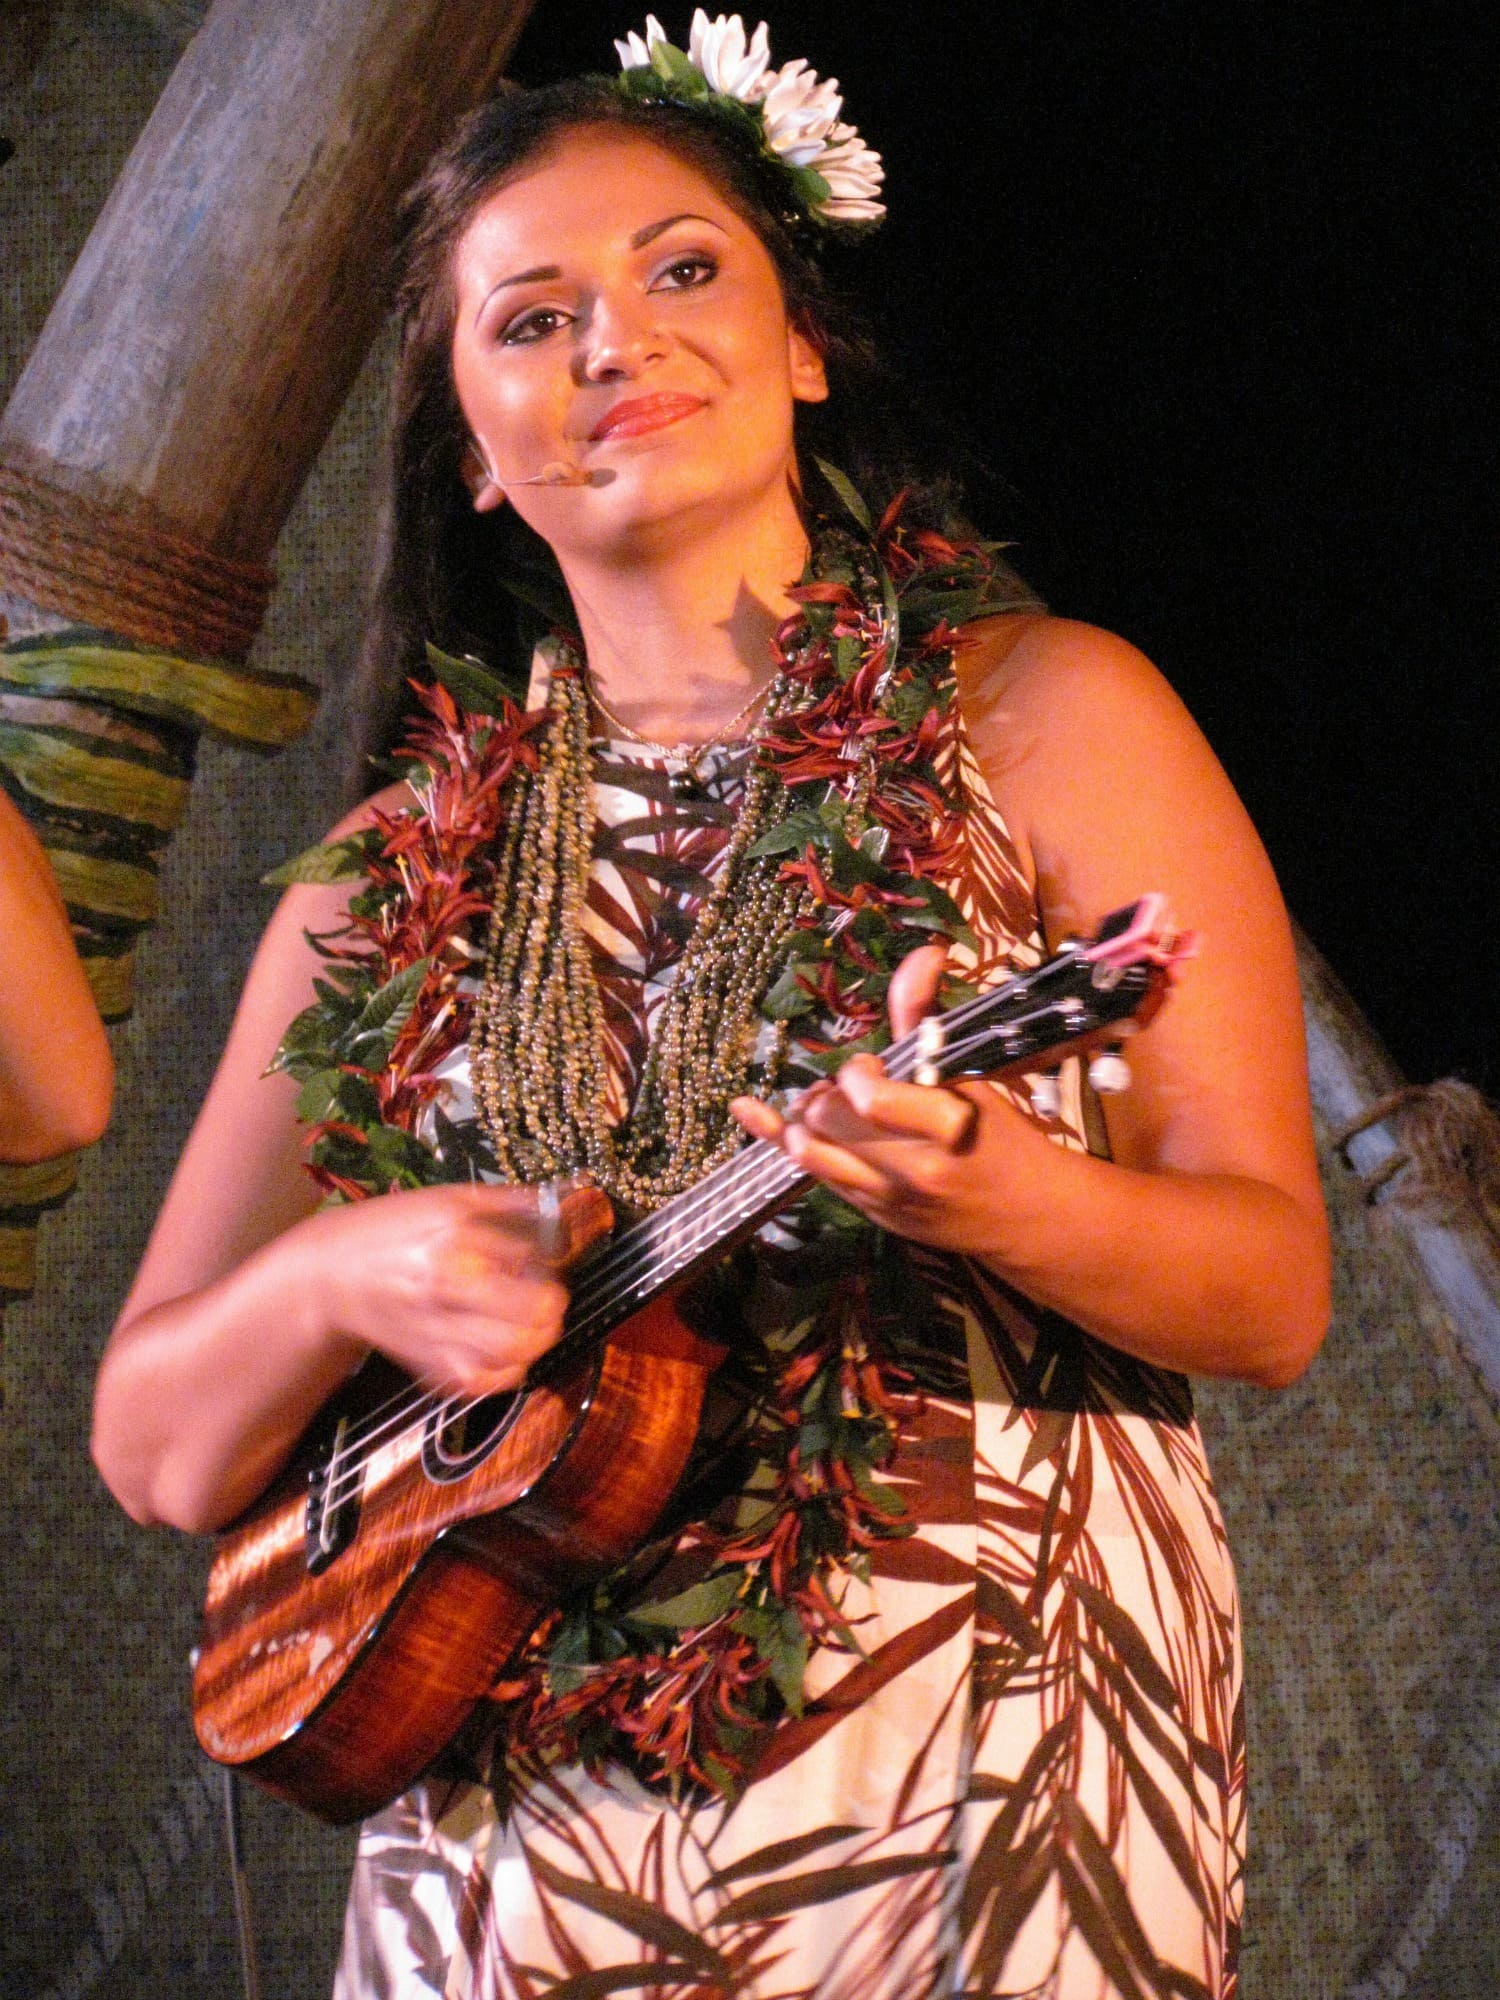 Starlit Hui treats guests of Aulani to a taste of Hawaiian traditions brought to life via music, dance and storytelling